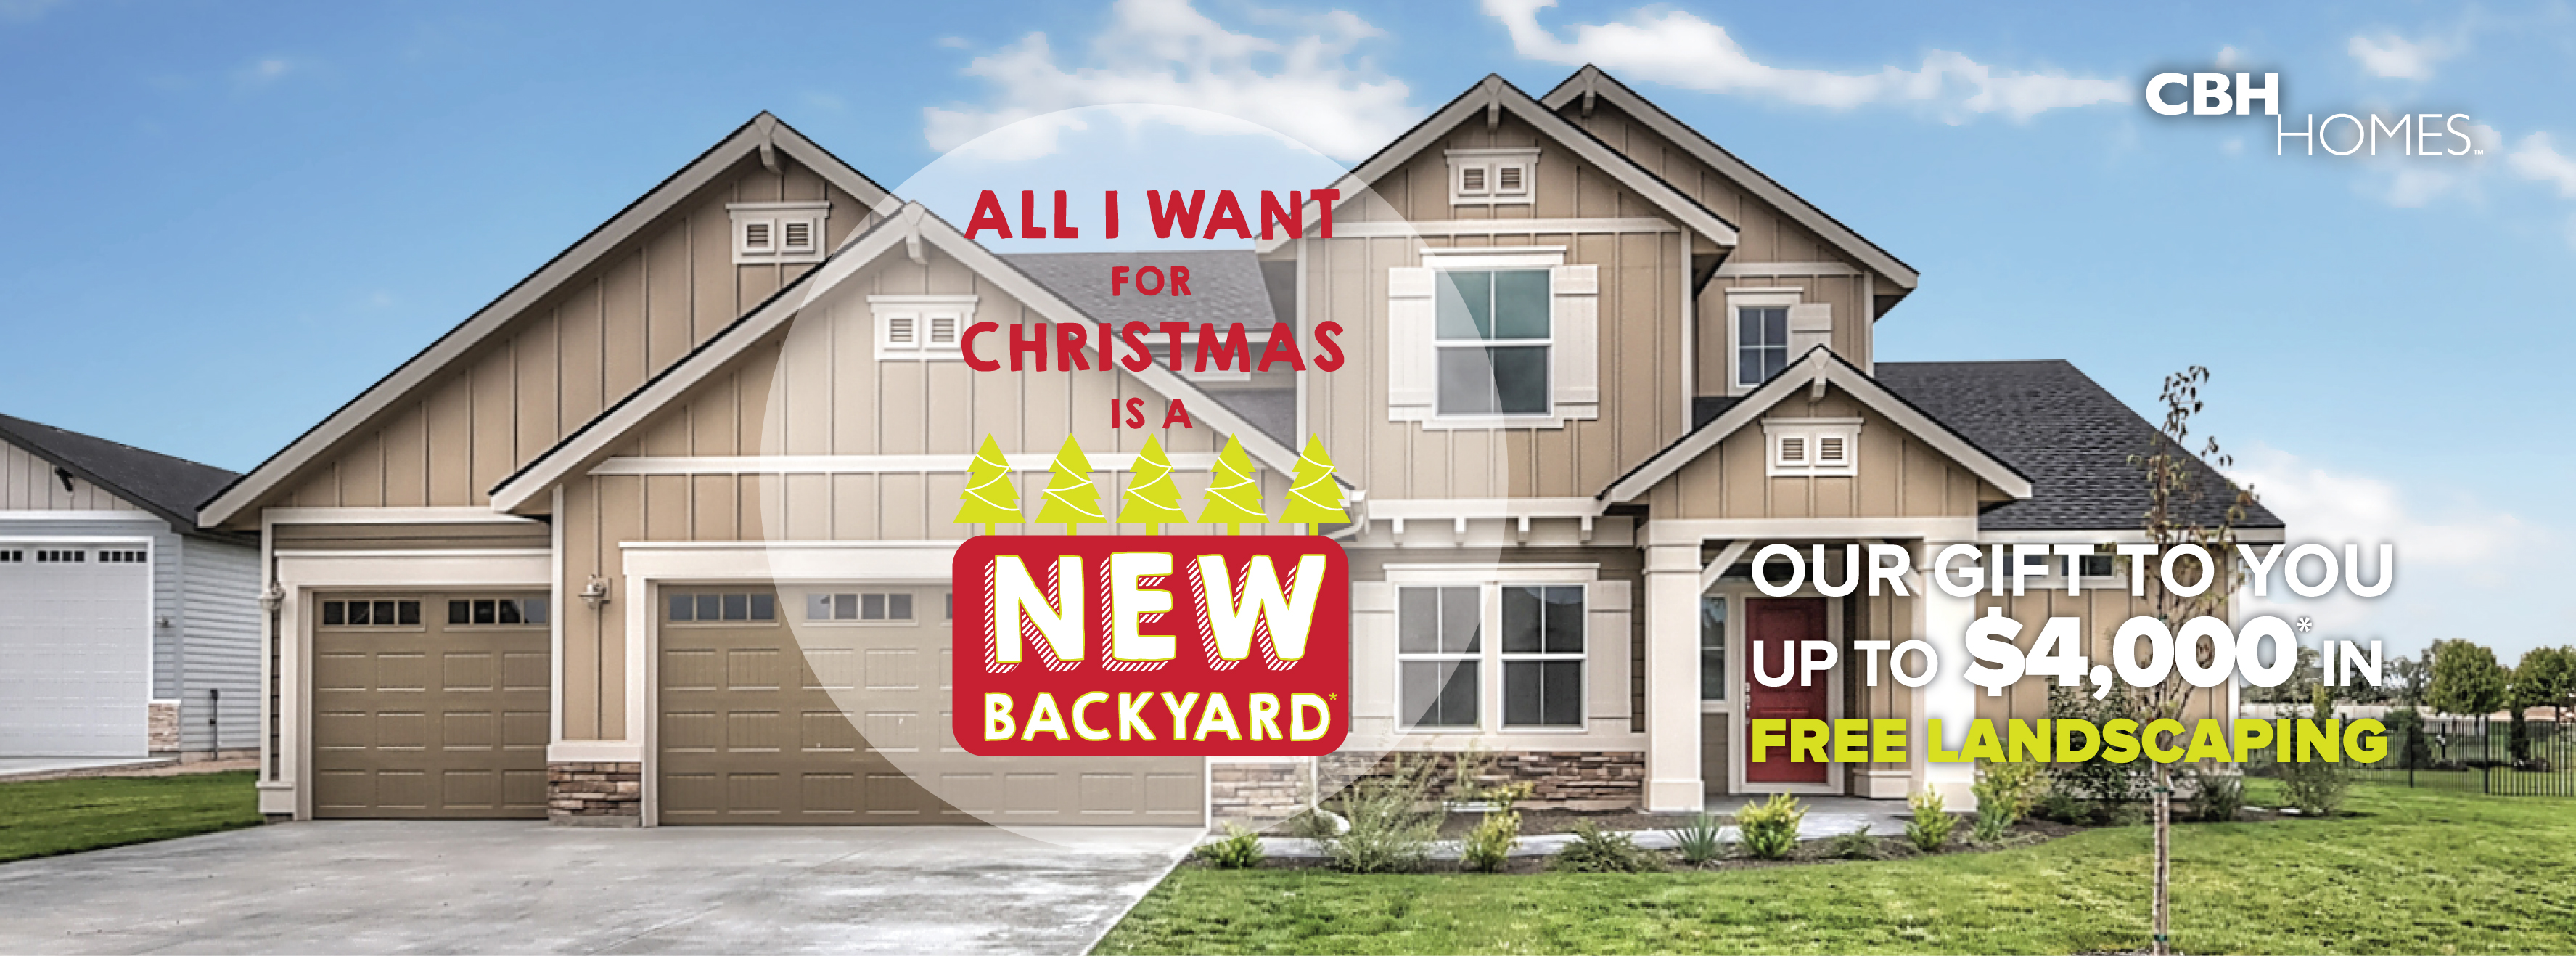 Our gift to you this holiday is a new backyard cbh homes blog - Cbh homes design studio ...